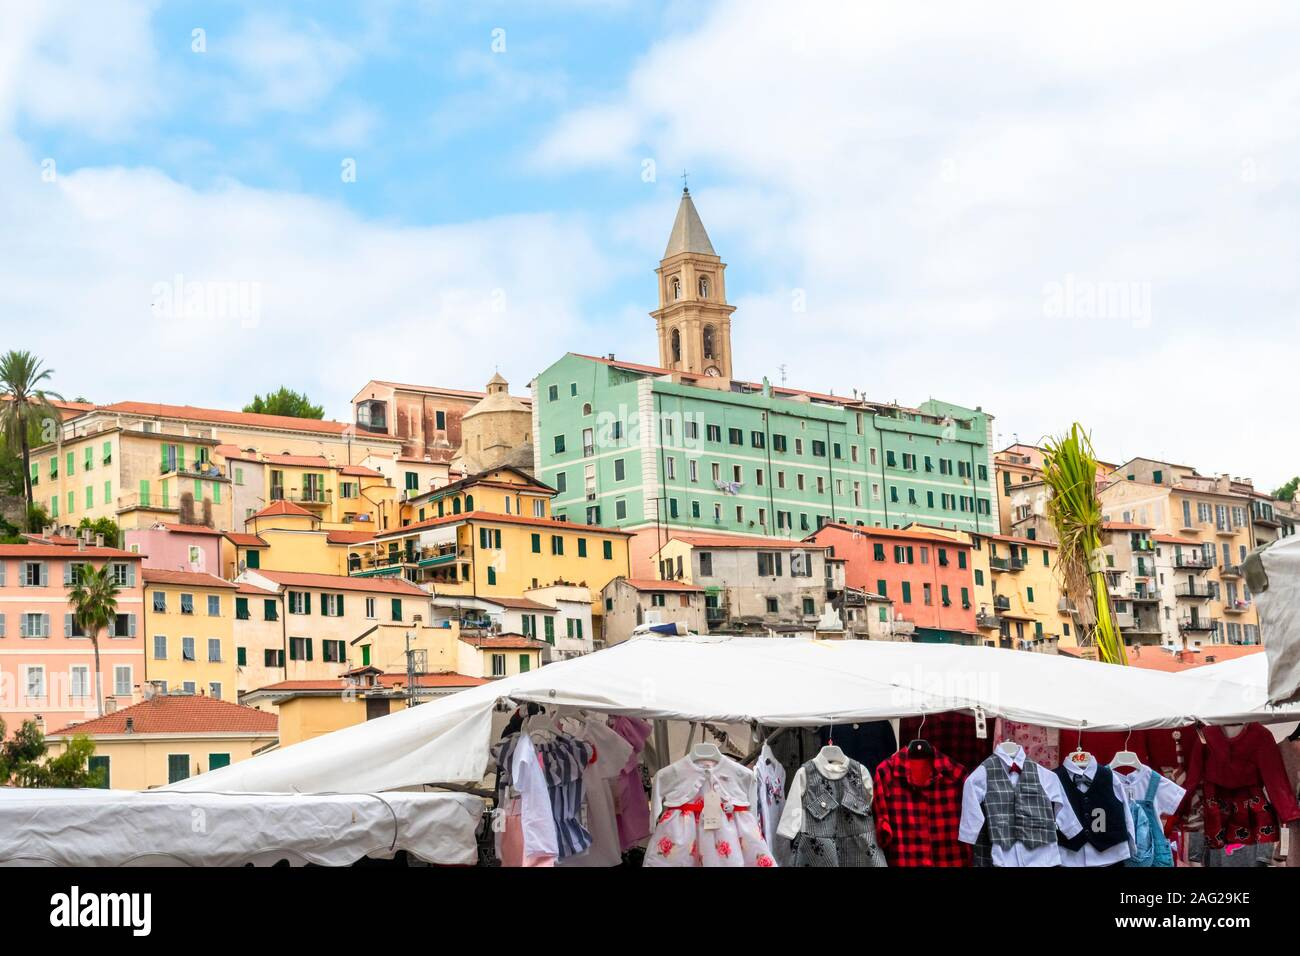 The colorful, medieval hilltop village of Ventimiglia, Italy, on the Italian Riviera rises above a clothing sale shop during the Friday outdoor market Stock Photo